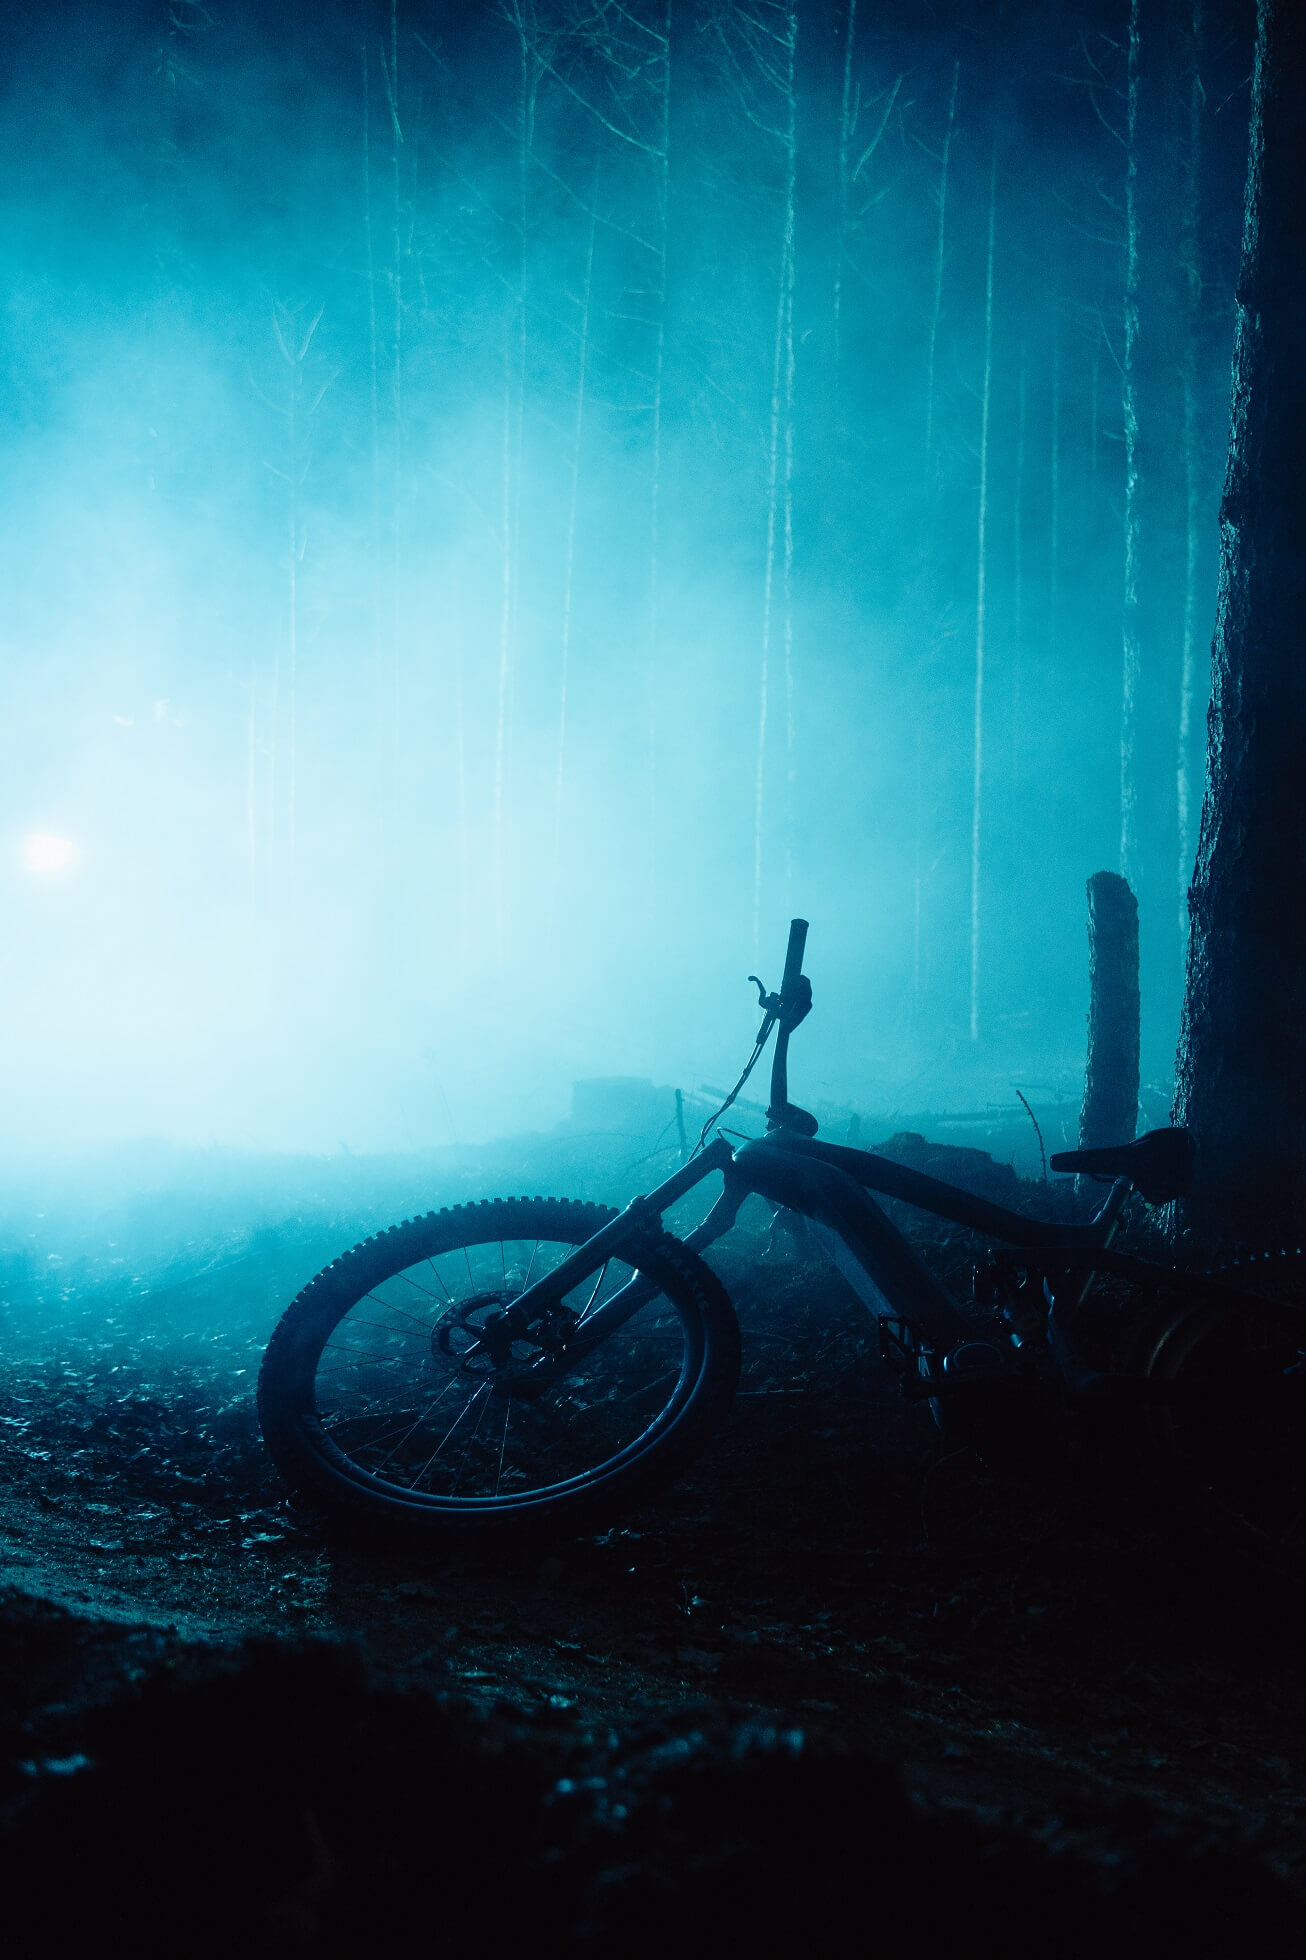 Mountain bike laying in a dark, slightly foggy forest with blue light in the background